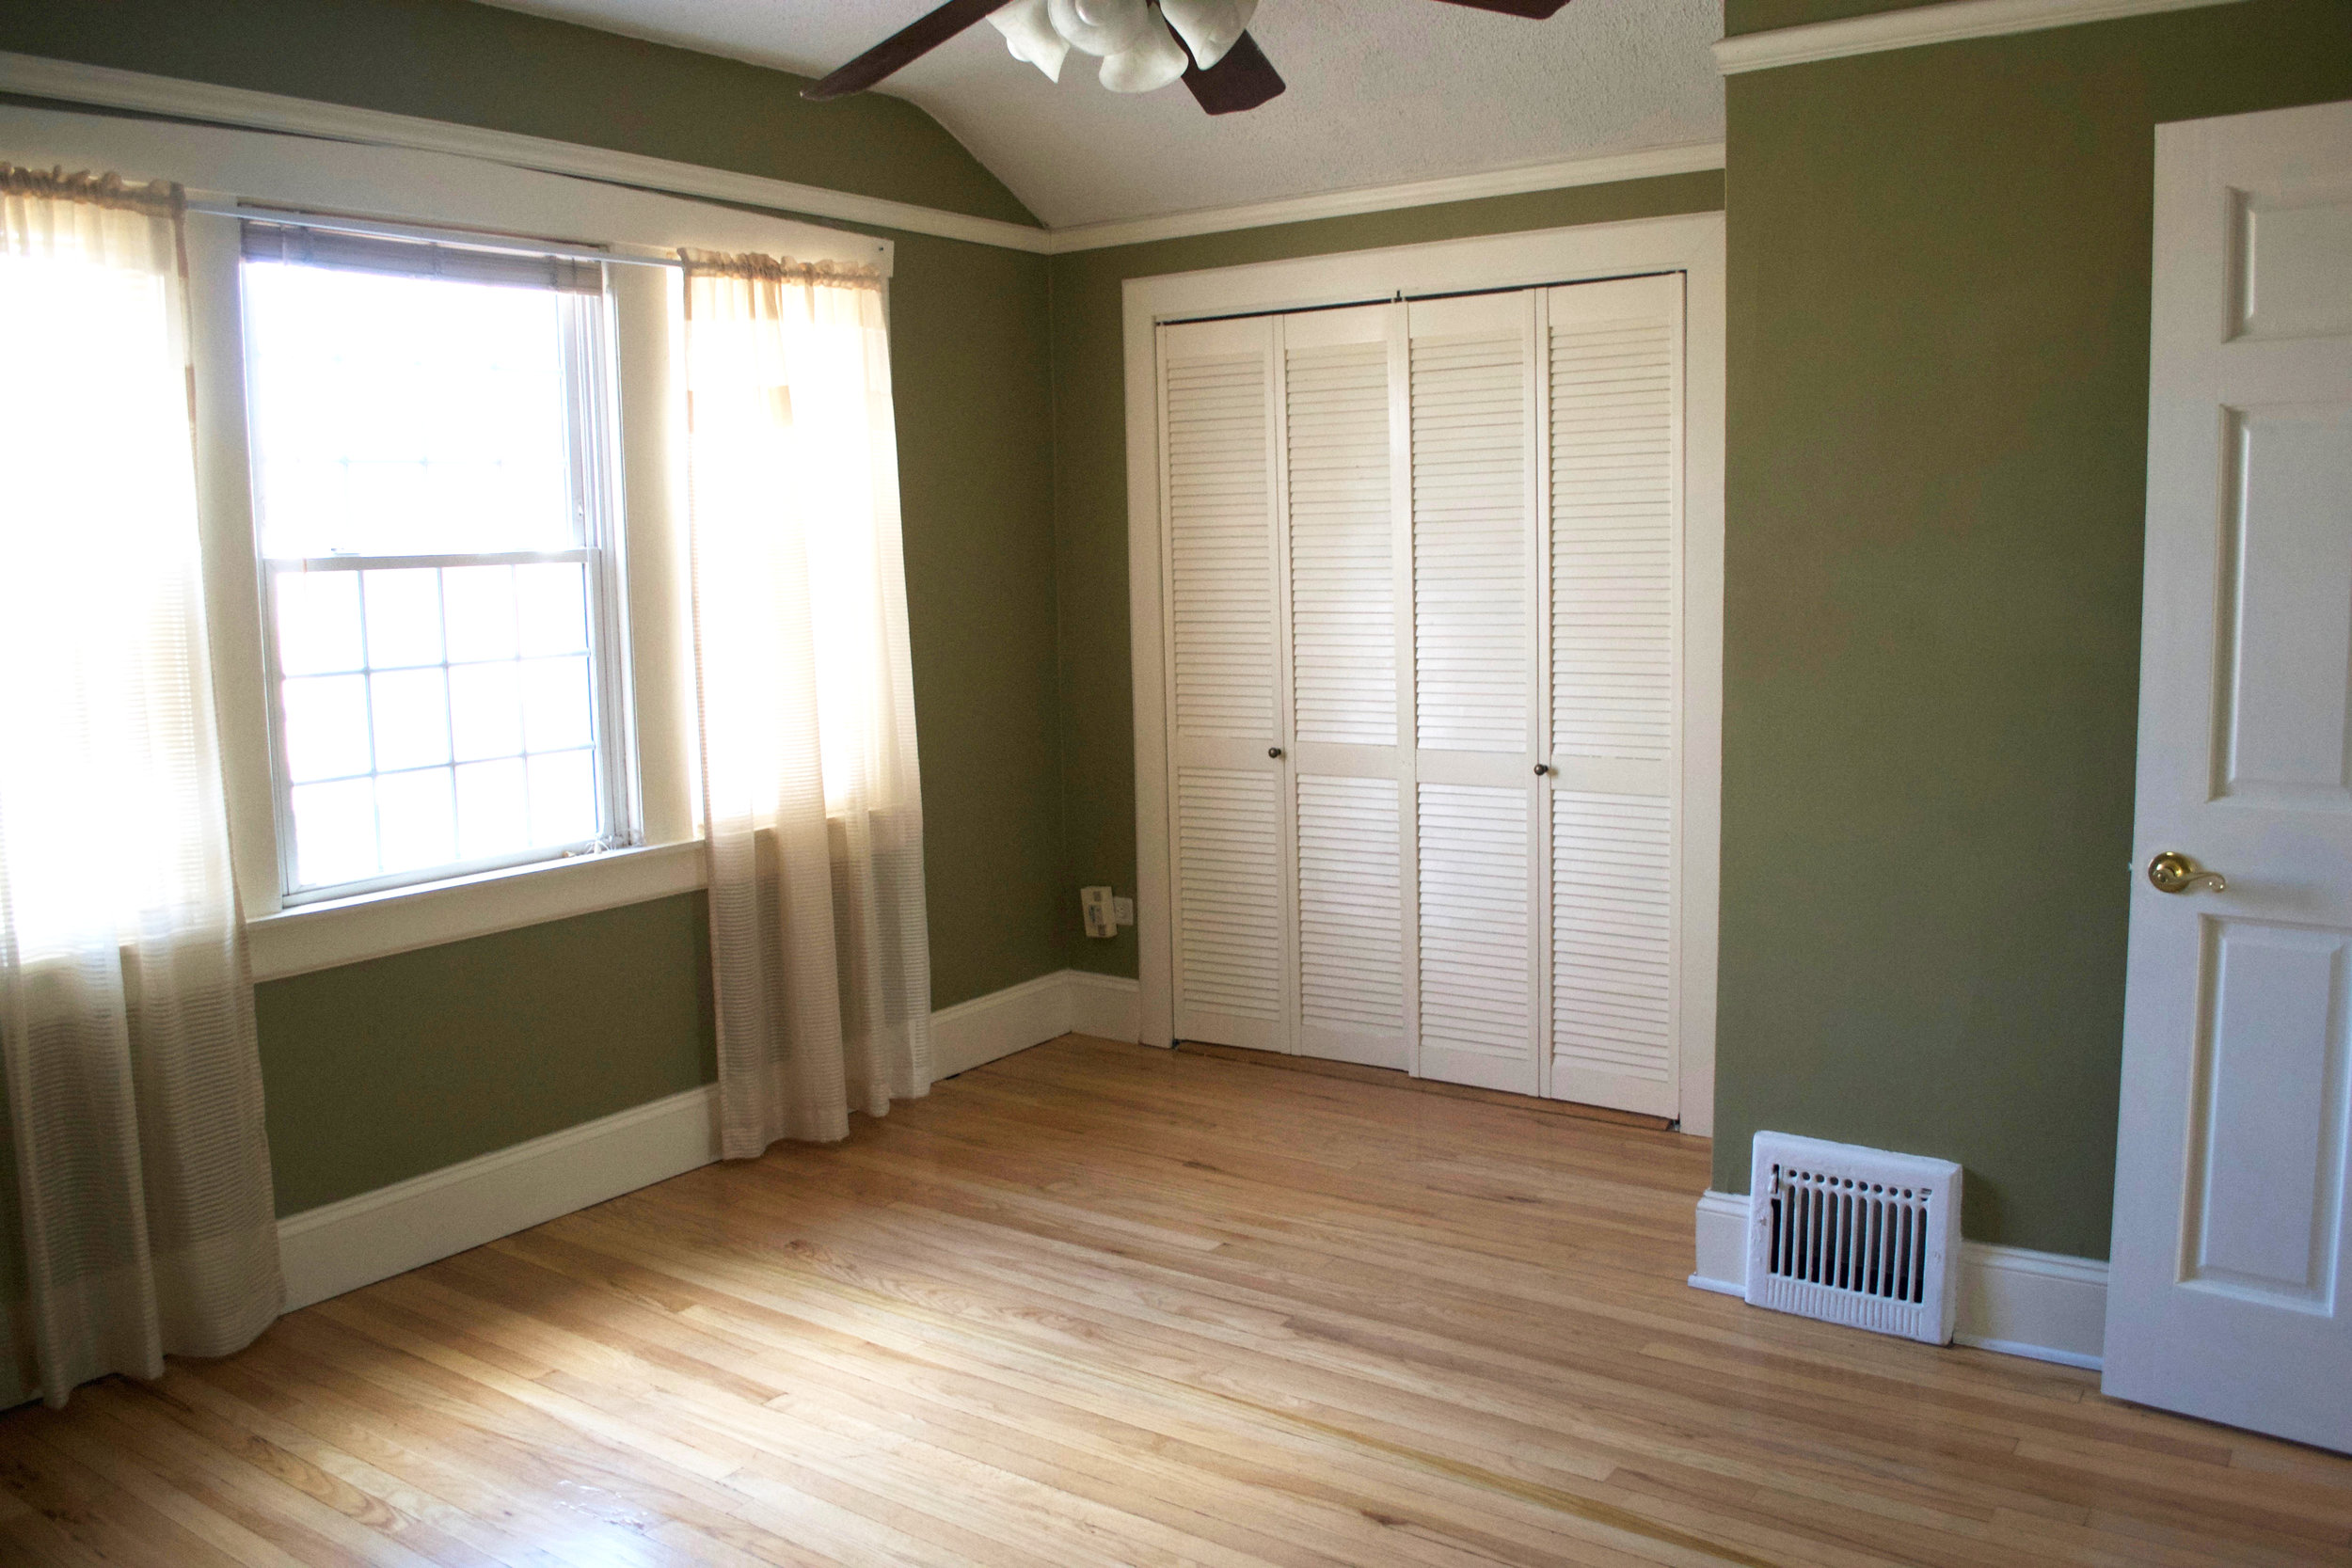 We removed the popcorn ceiling and the awkward trim, as well as painted the walls and replaced the doorknob, ceiling fan, and window coverings